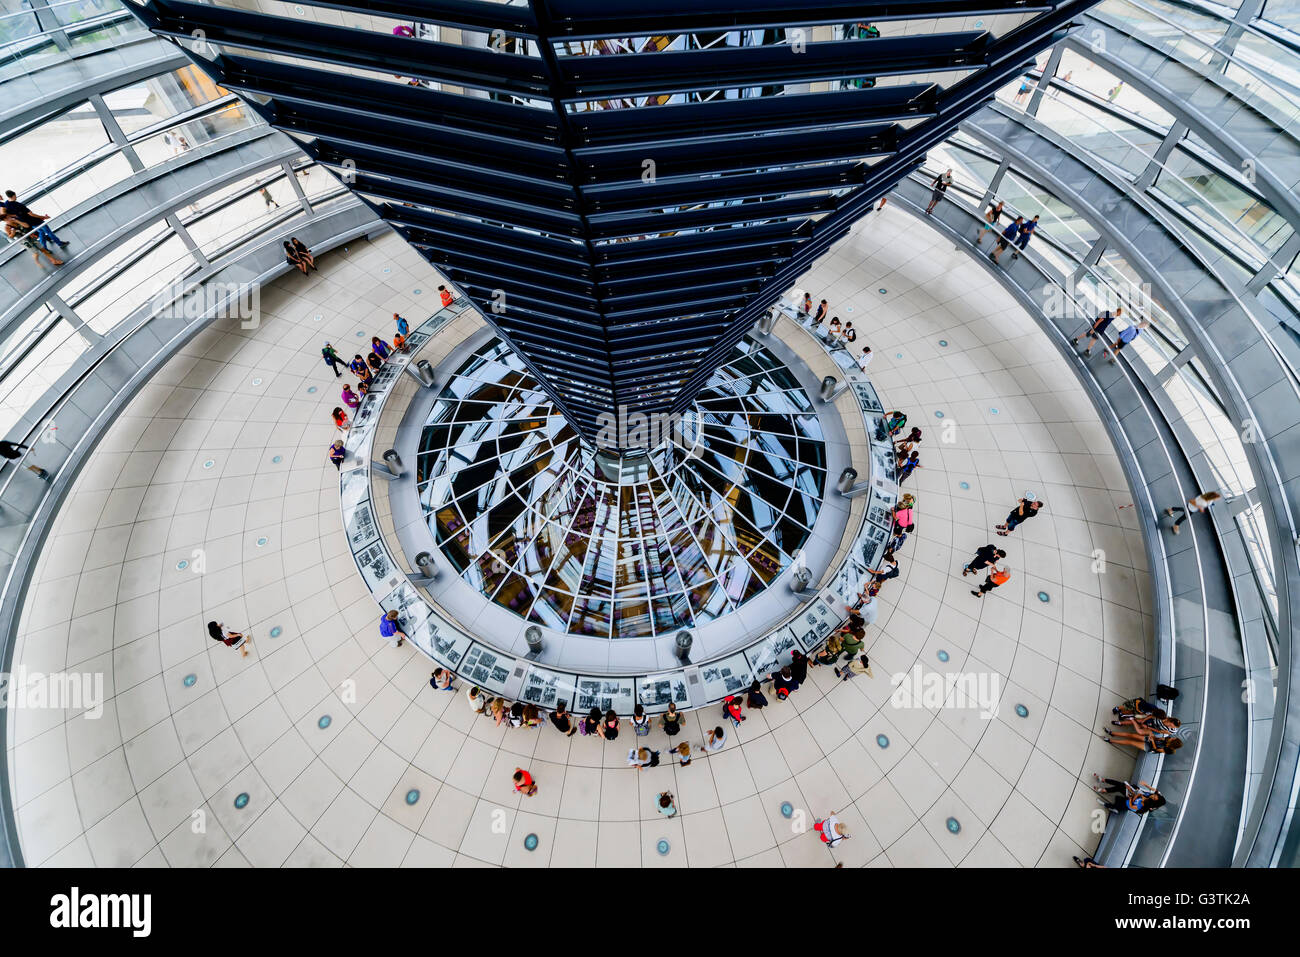 Germany, Berlin, Elevated view of Bundestag atrium - Stock Image